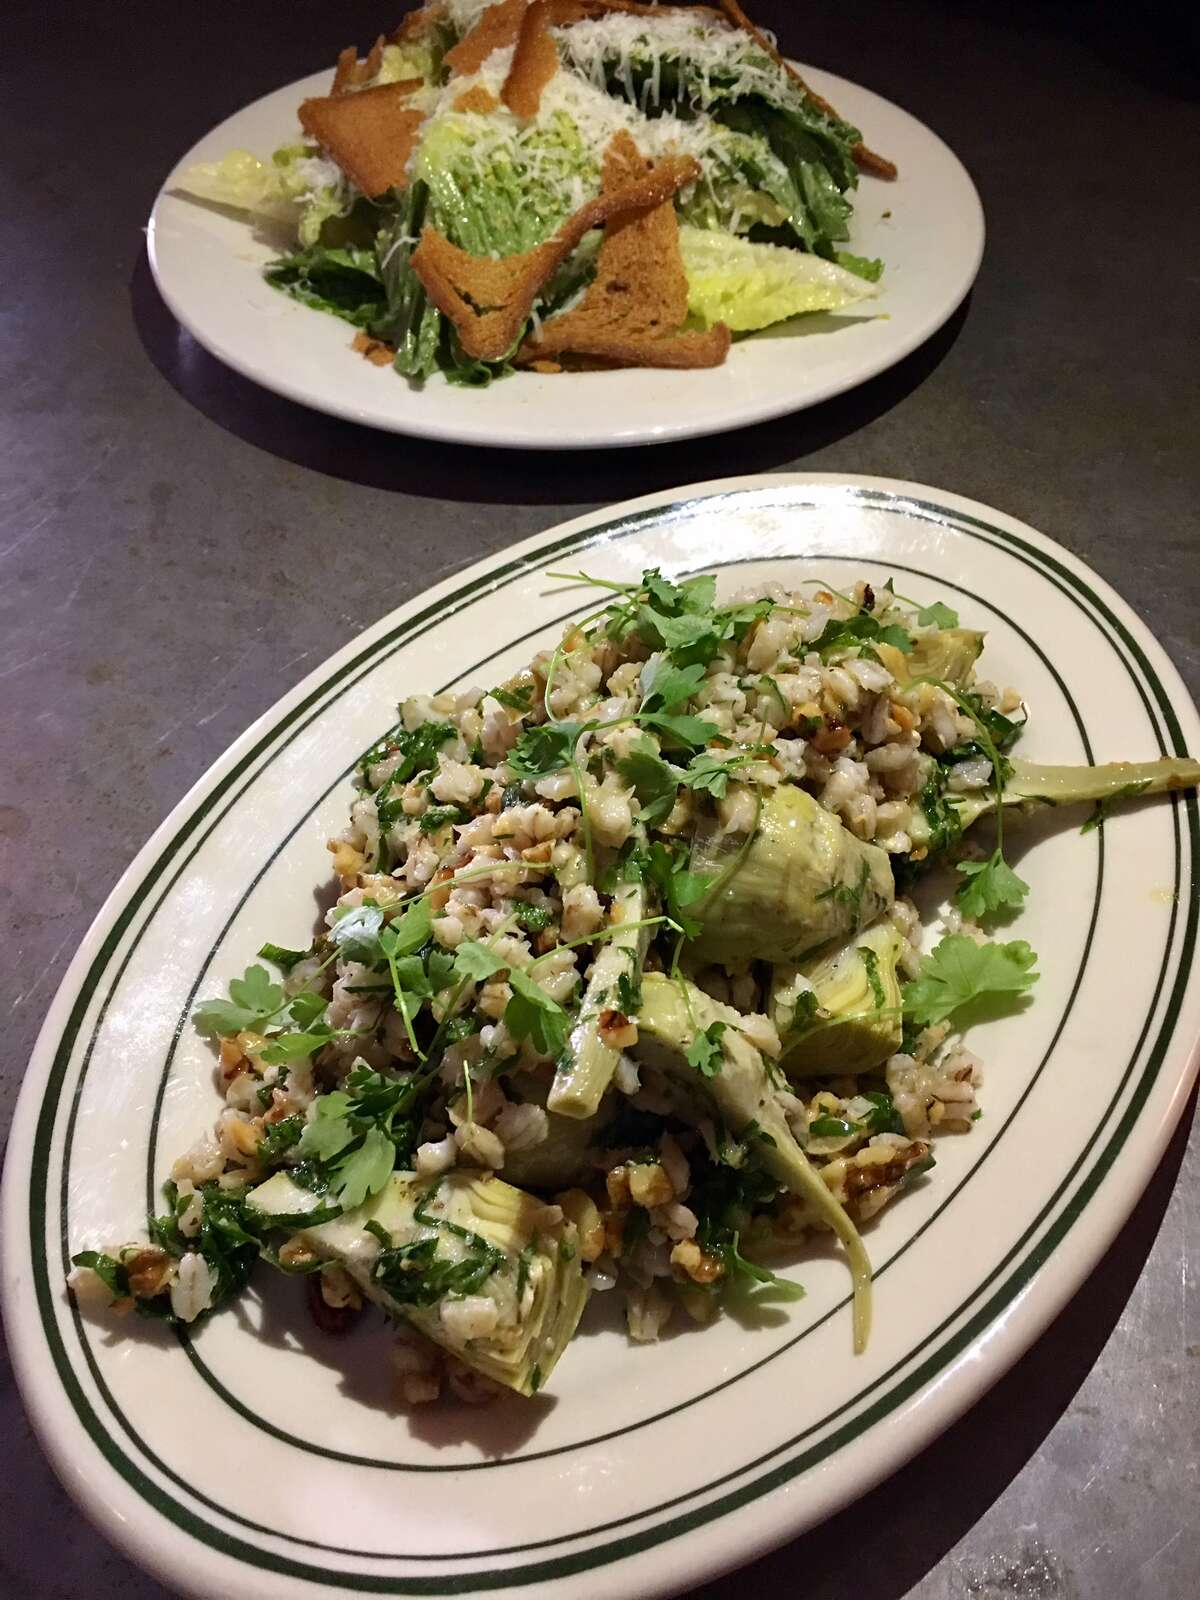 Confit artichoke salad with pearl barley, flax, sunflower seeds and walnuts ($12)